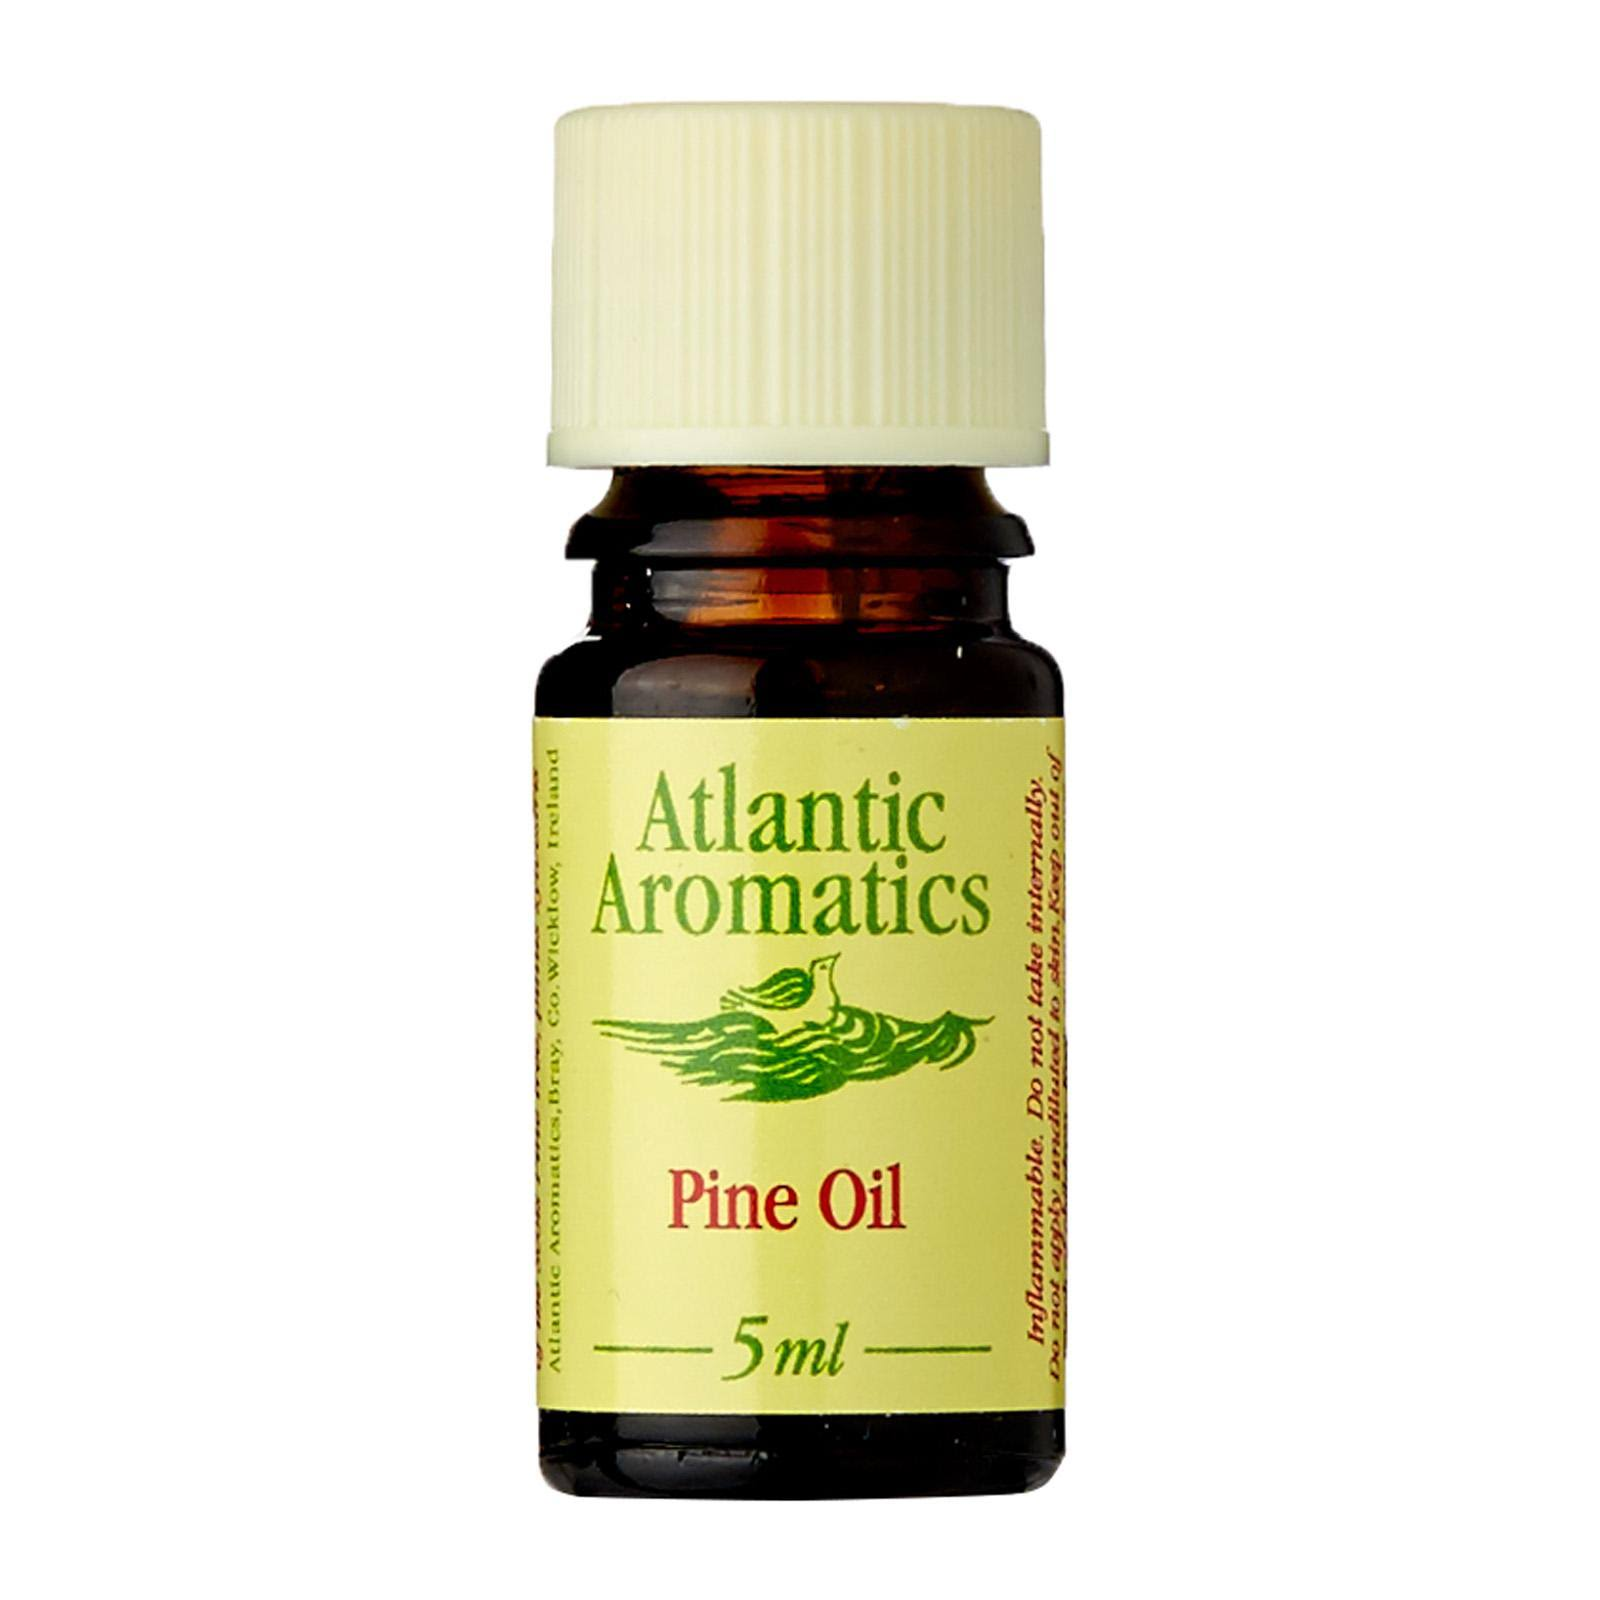 Atlantic Aromatics Pine Oil